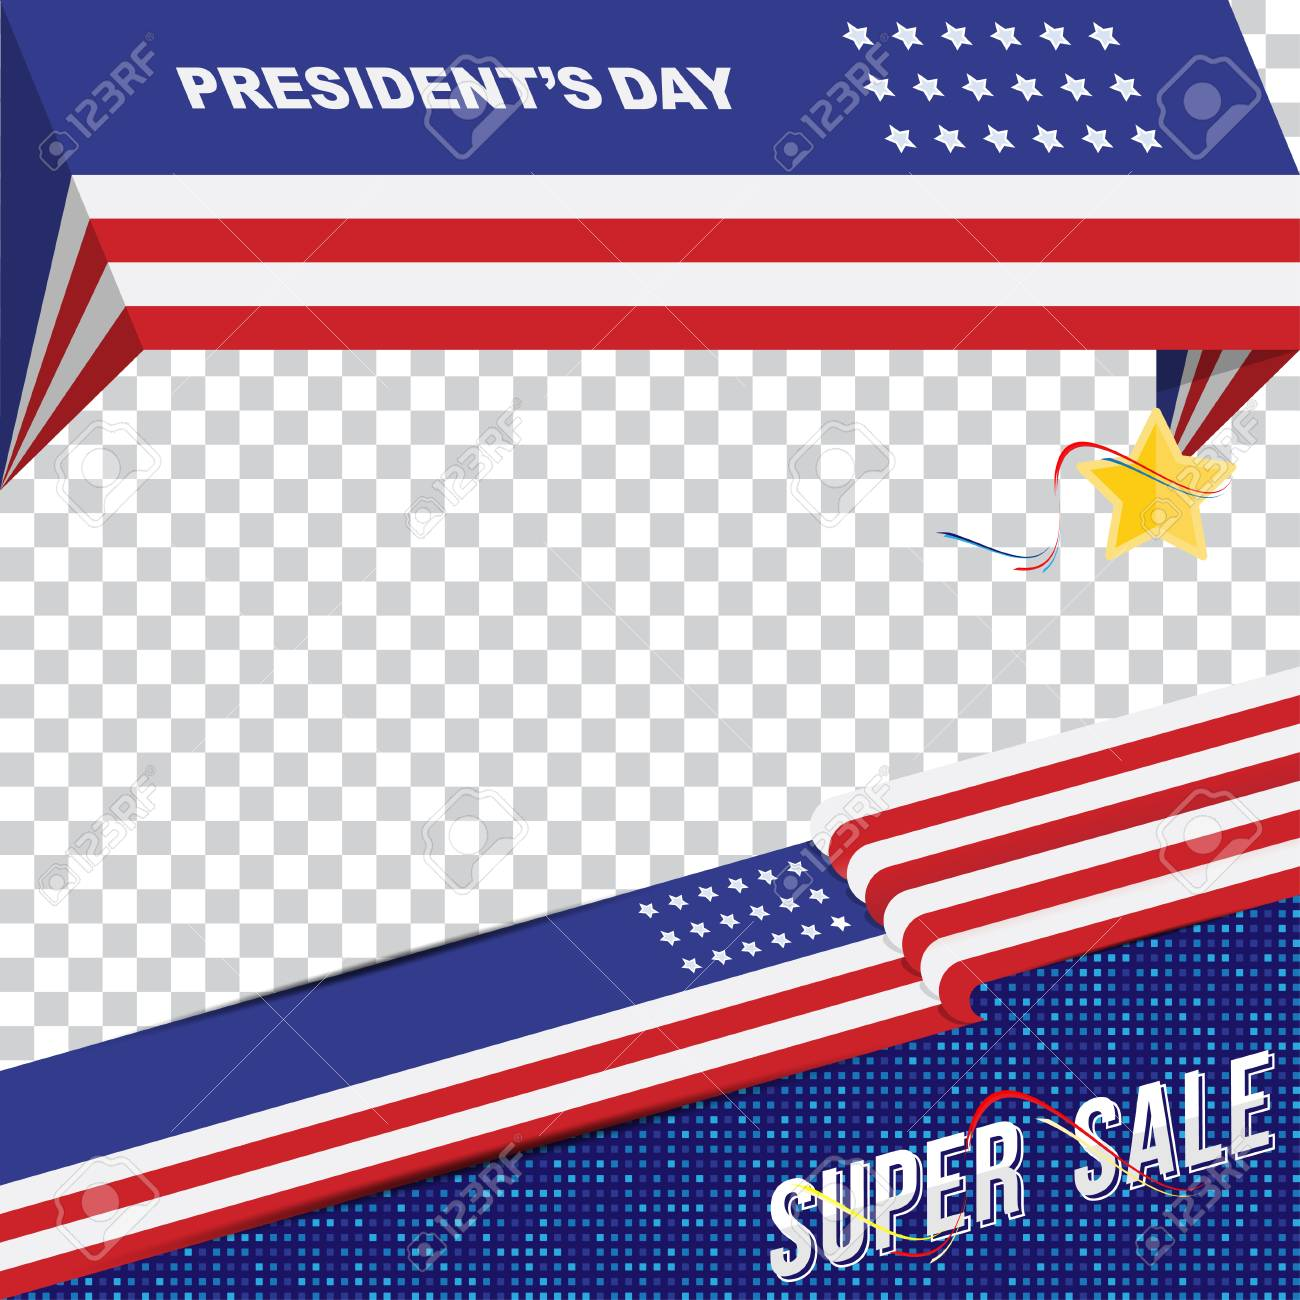 happy presidents day of usa template banner design element with